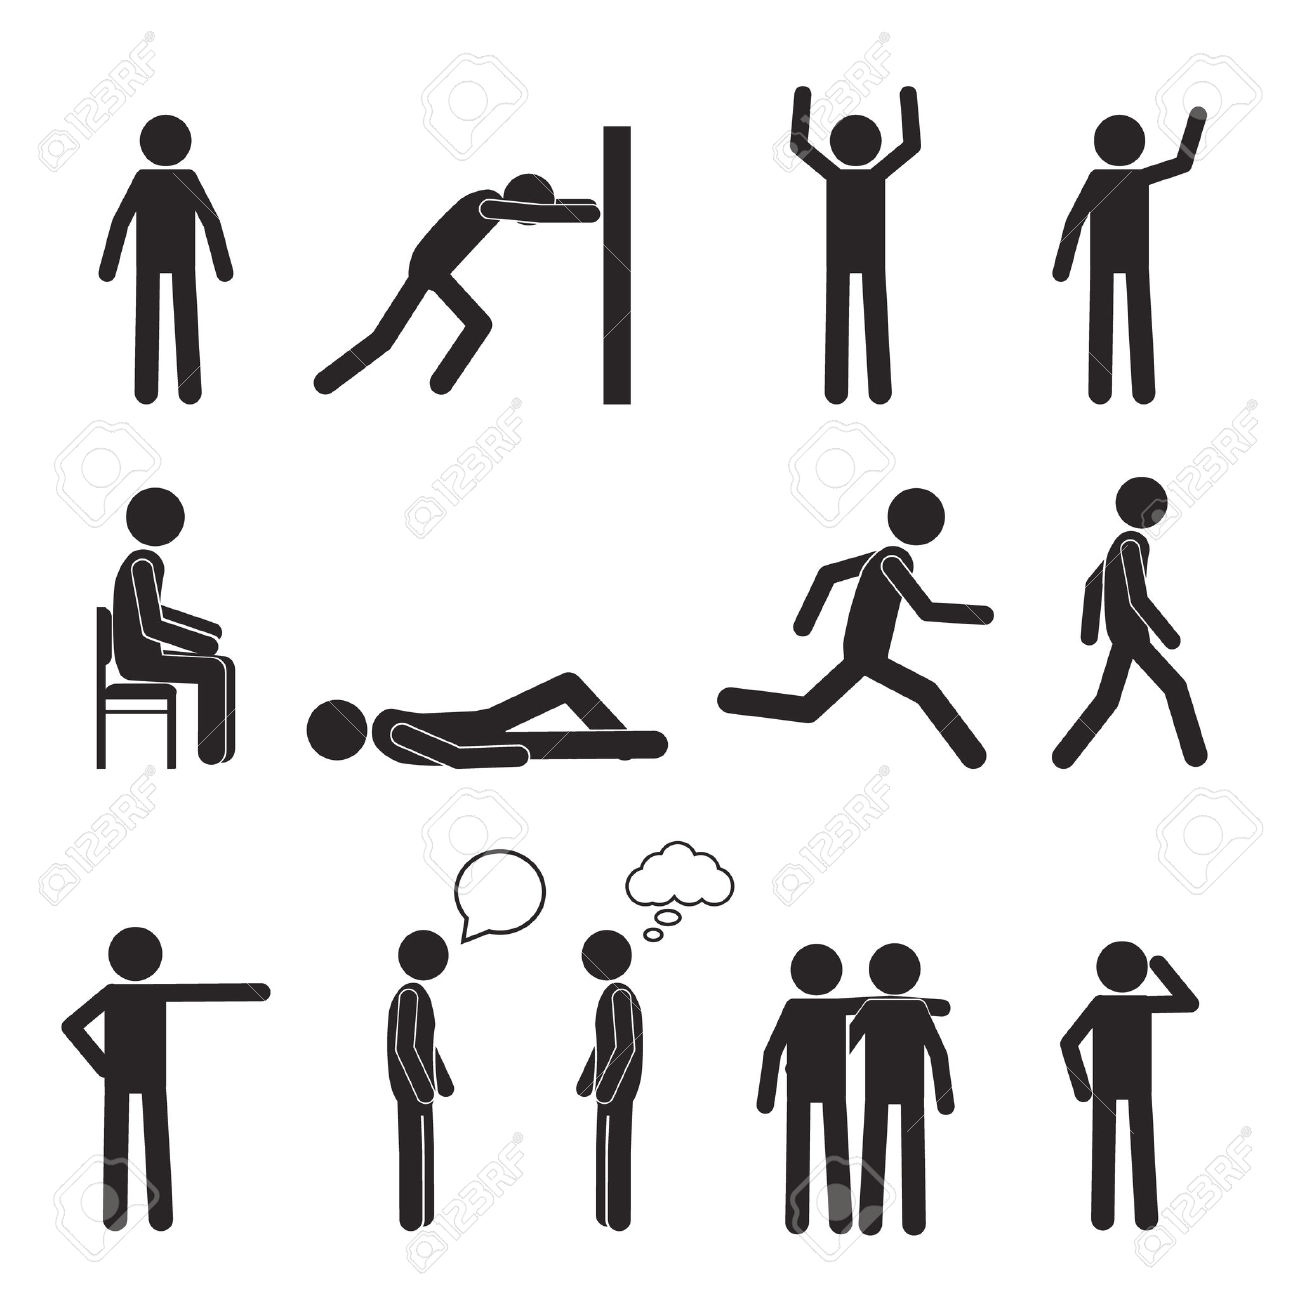 Man Posture Pictogram And Icons Set. People Sitting, Standing.